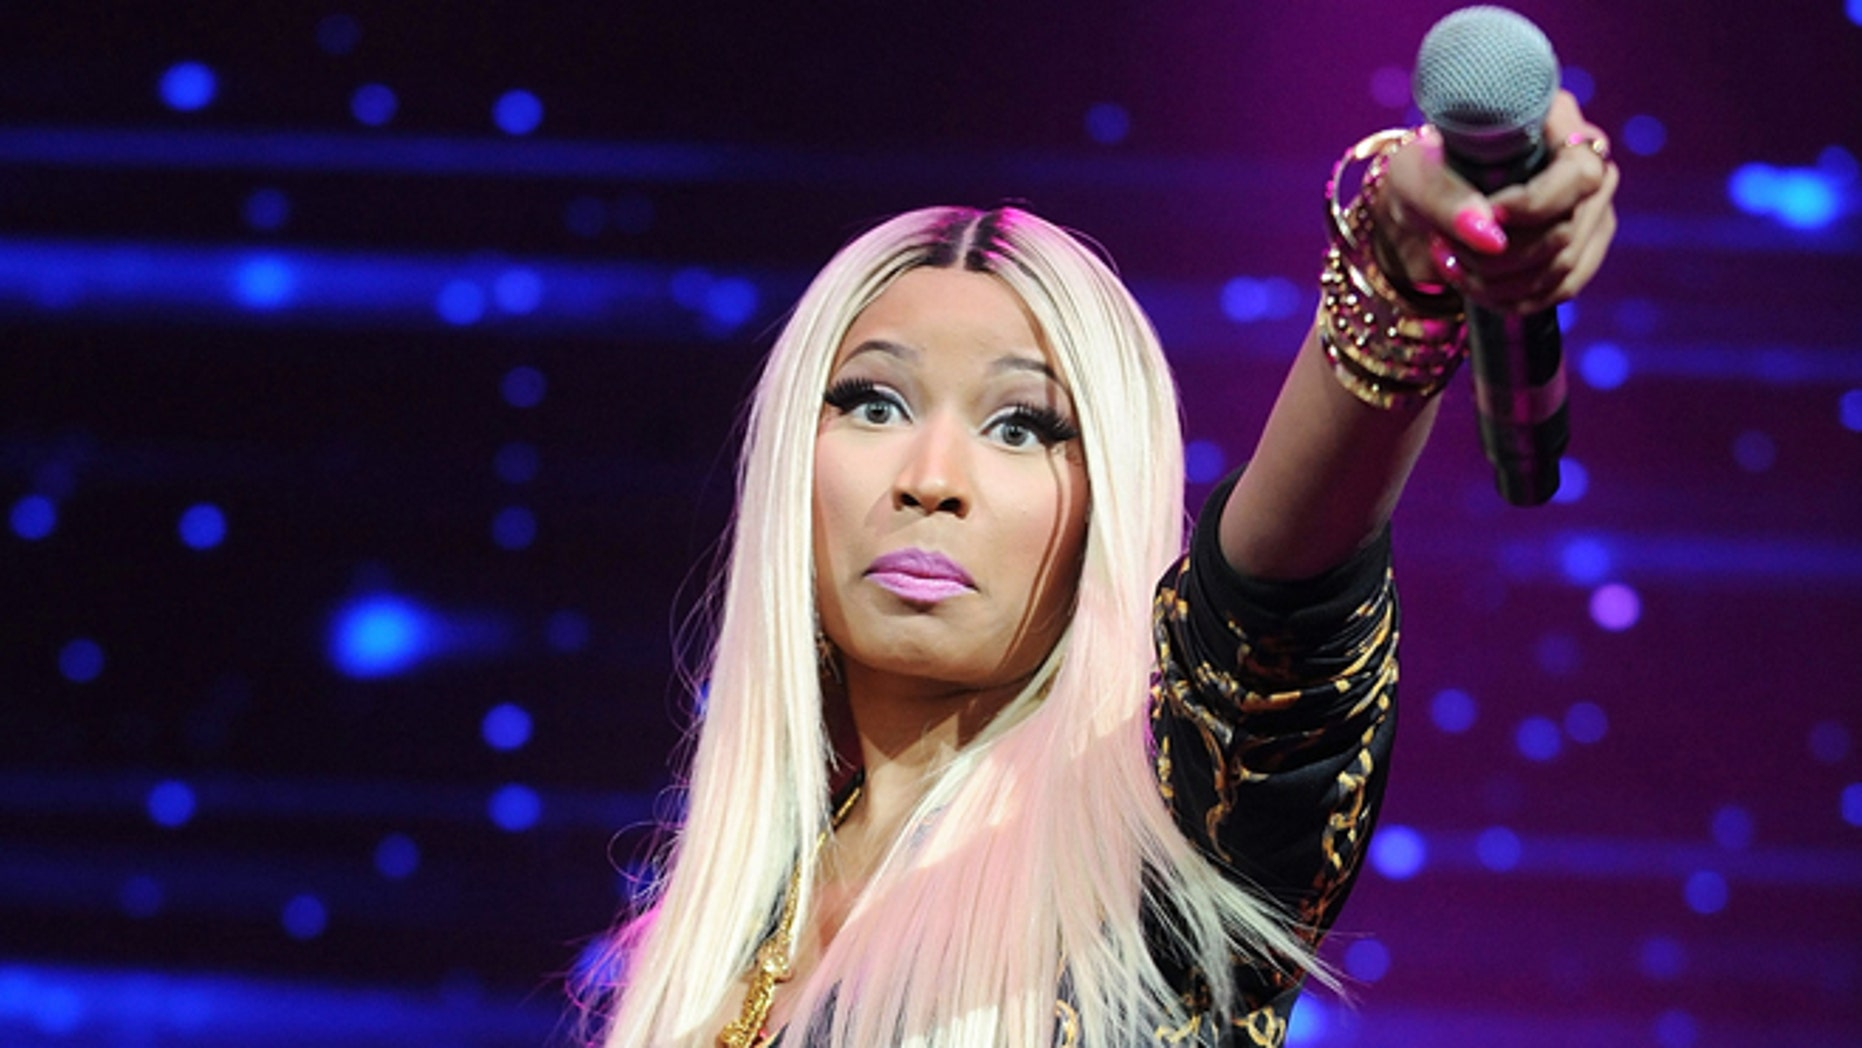 Nov. 2, 2013: Hip-hop artist Nicki Minaj performs at the Power 105.1's Powerhouse Concert at the Barclays Center in New York.